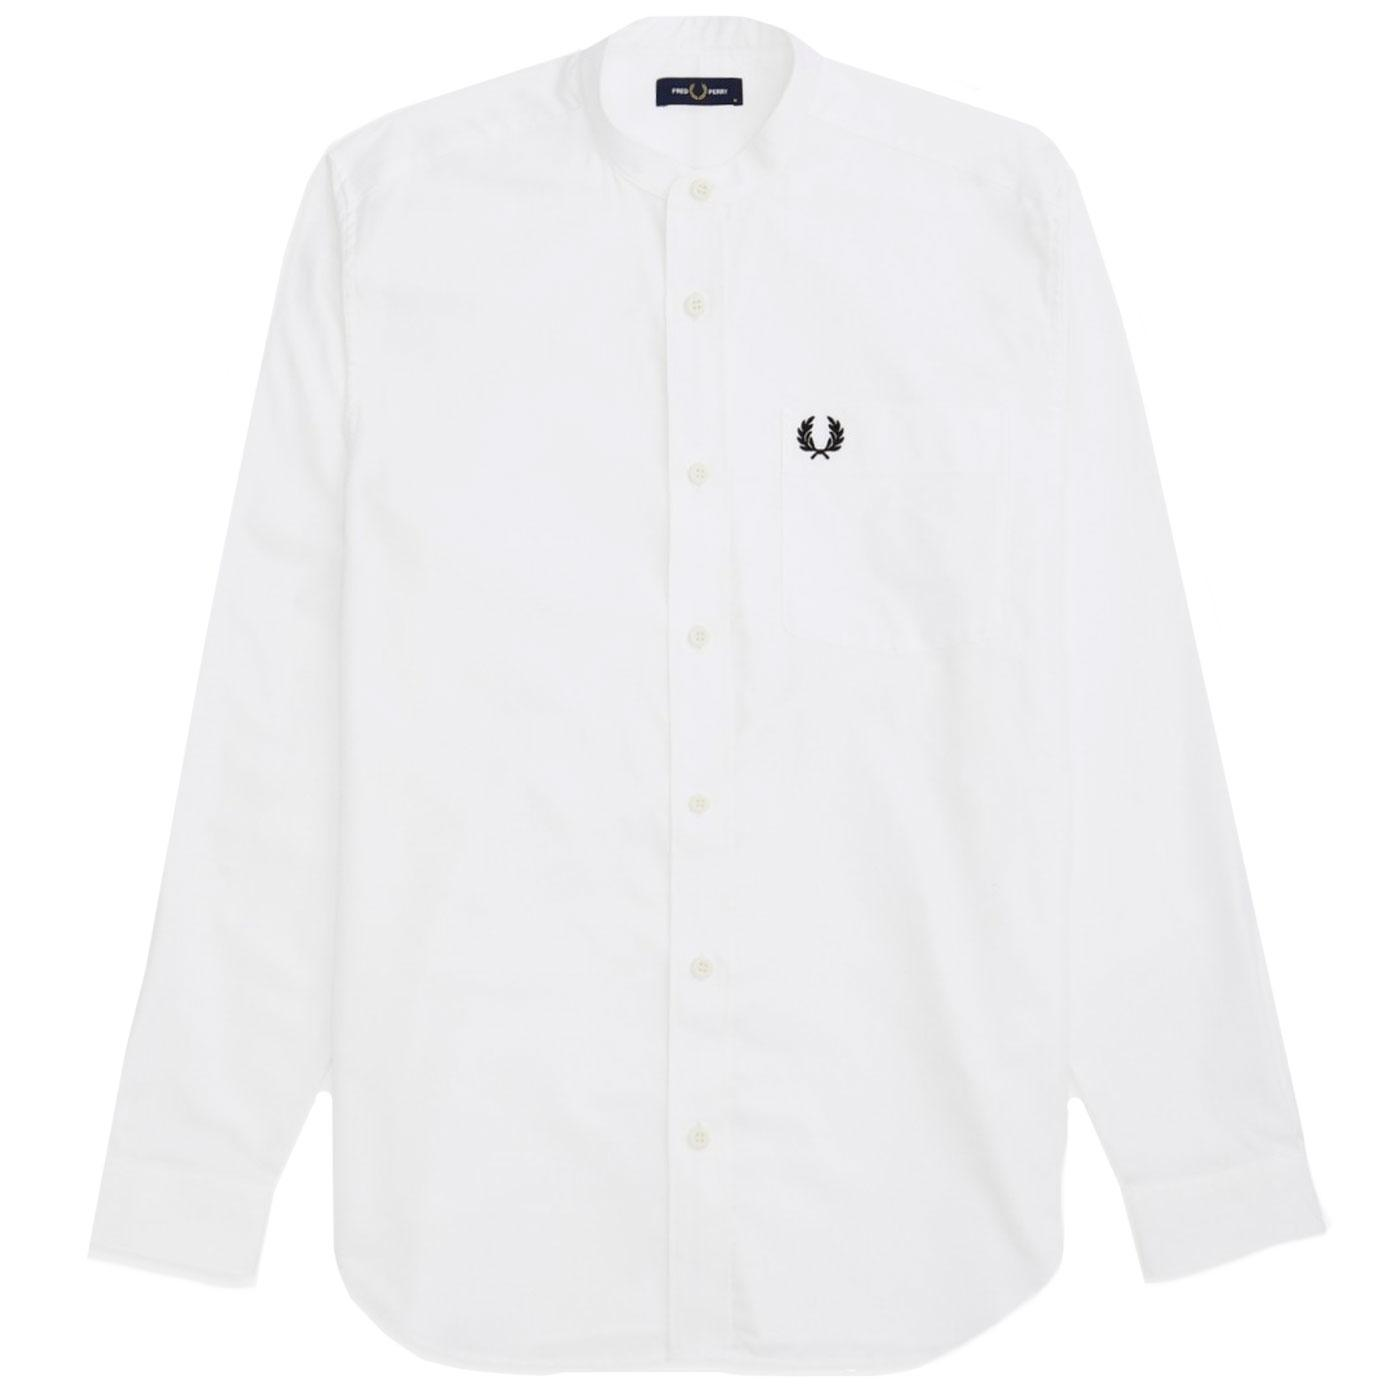 FRED PERRY Retro 60's Grandad Collar Oxford Shirt